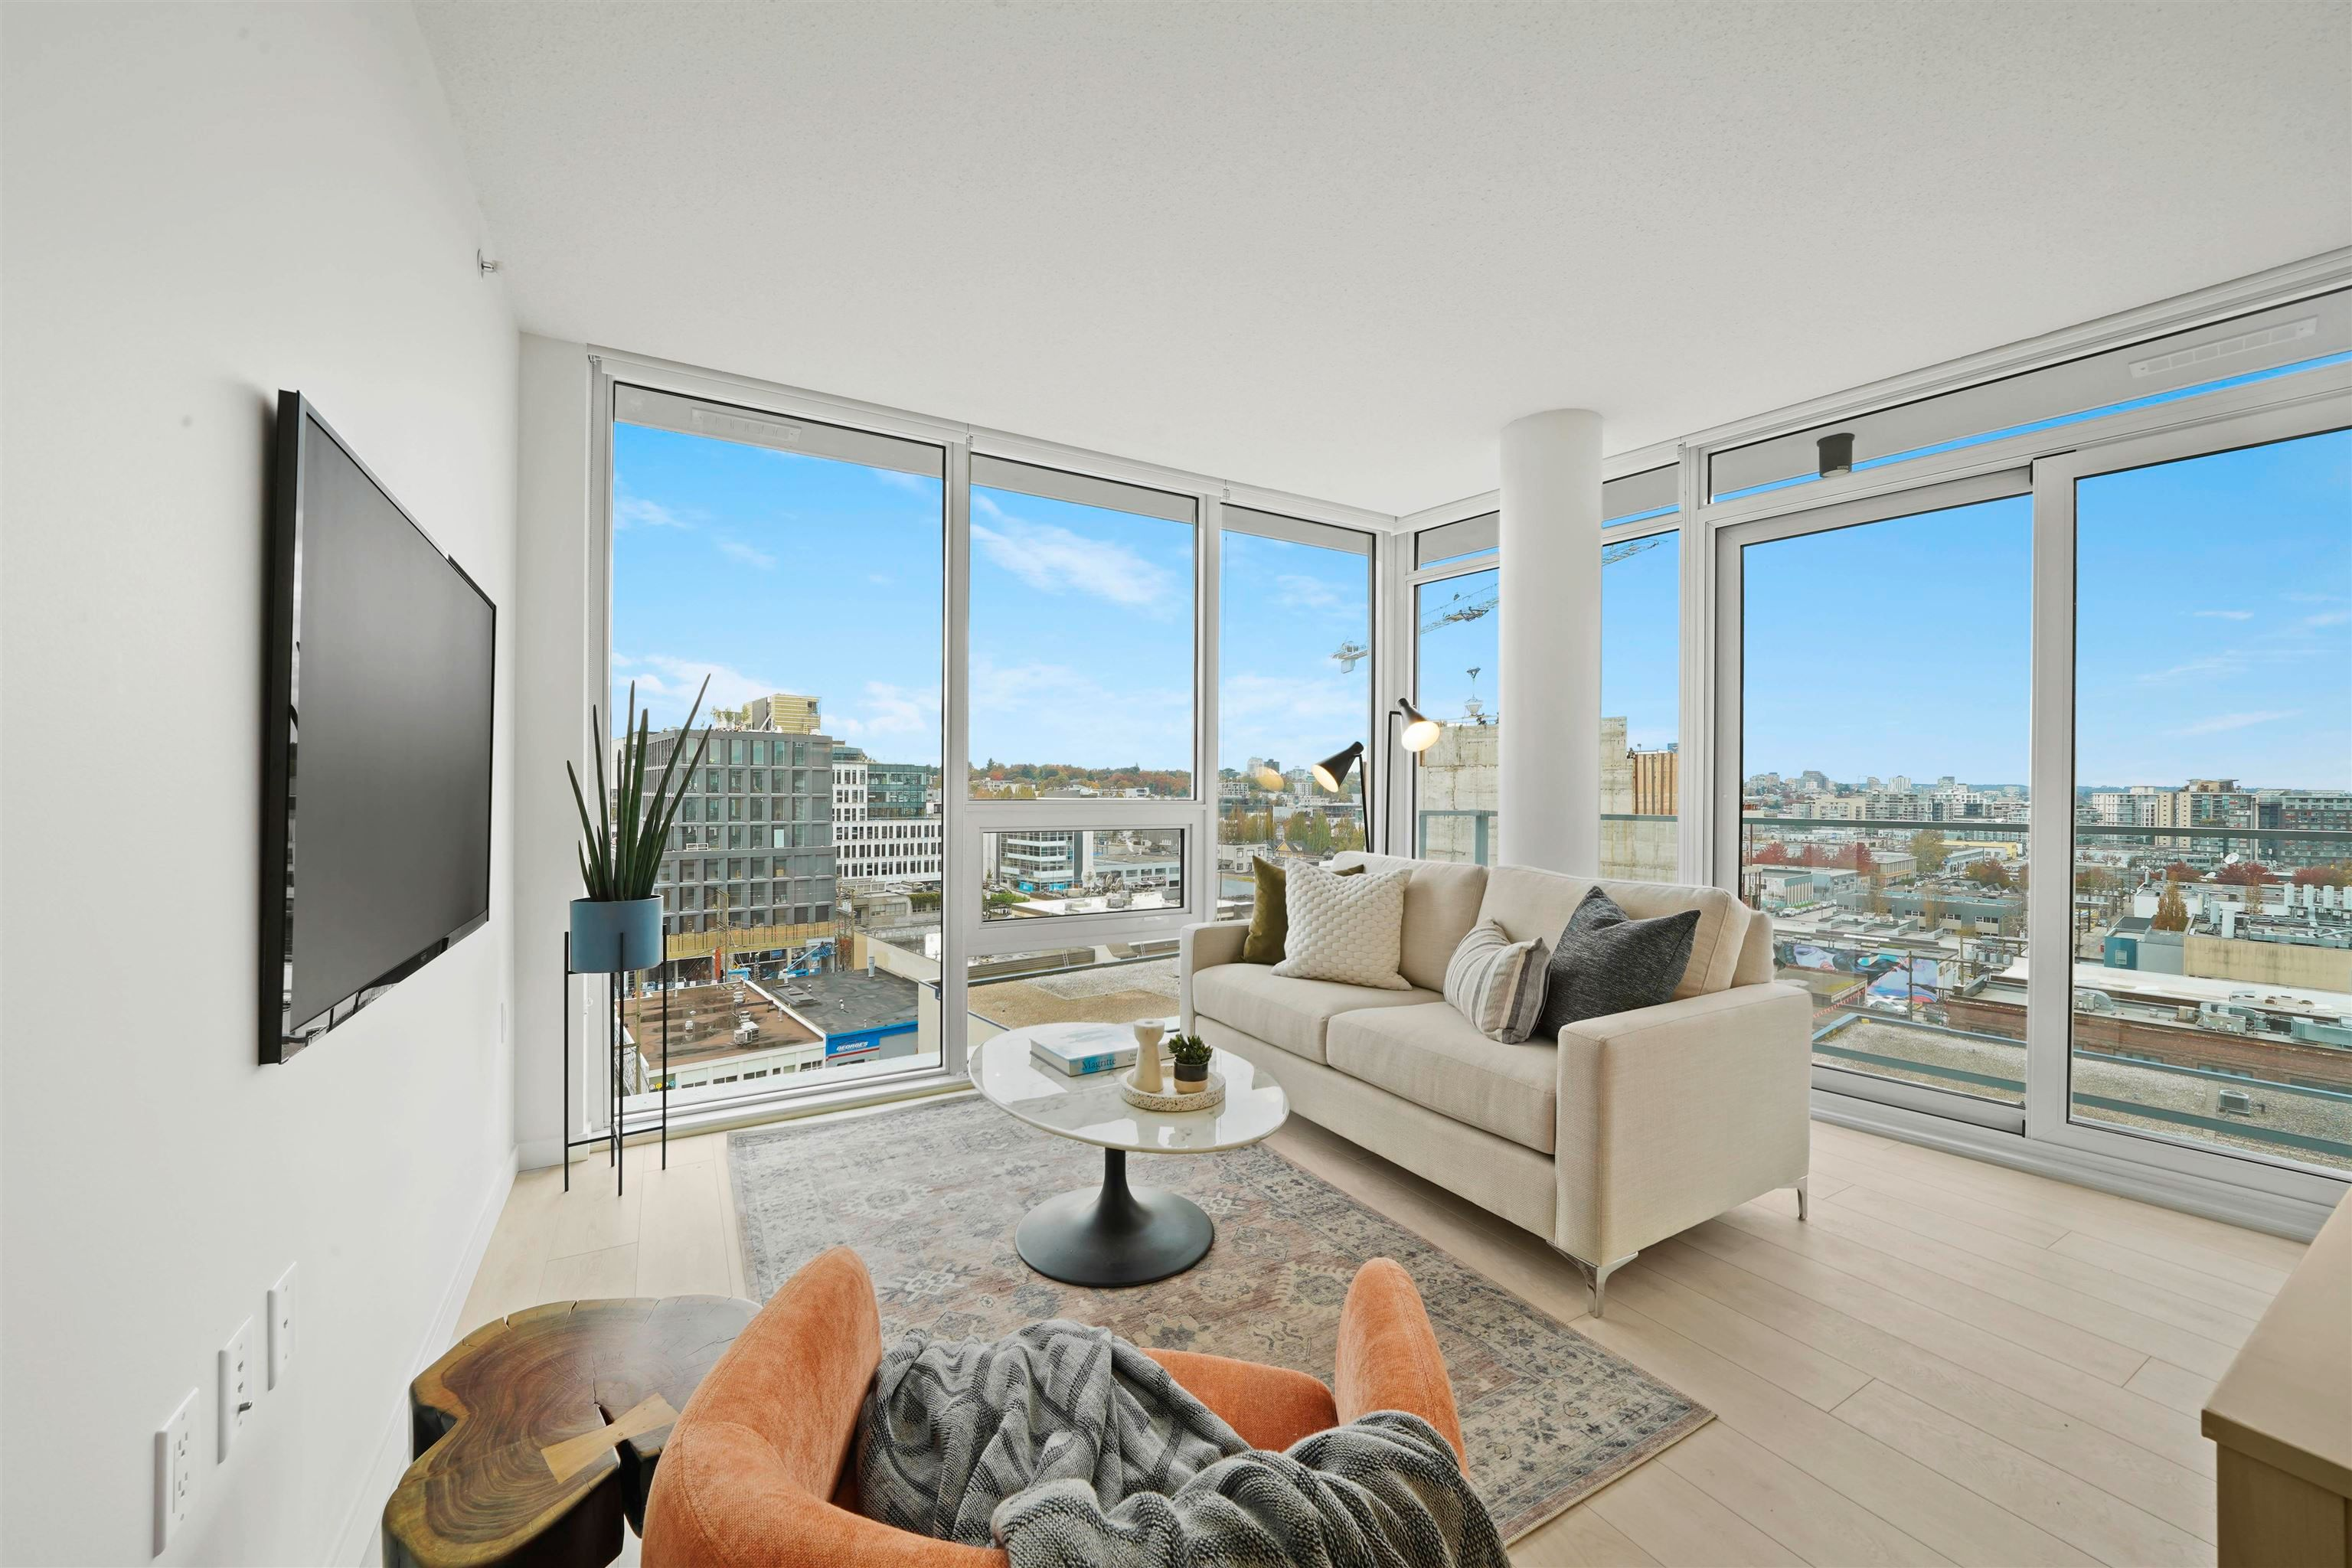 """Main Photo: 1102 180 E 2ND Avenue in Vancouver: Mount Pleasant VE Condo for sale in """"Second + Main"""" (Vancouver East)  : MLS®# R2625893"""